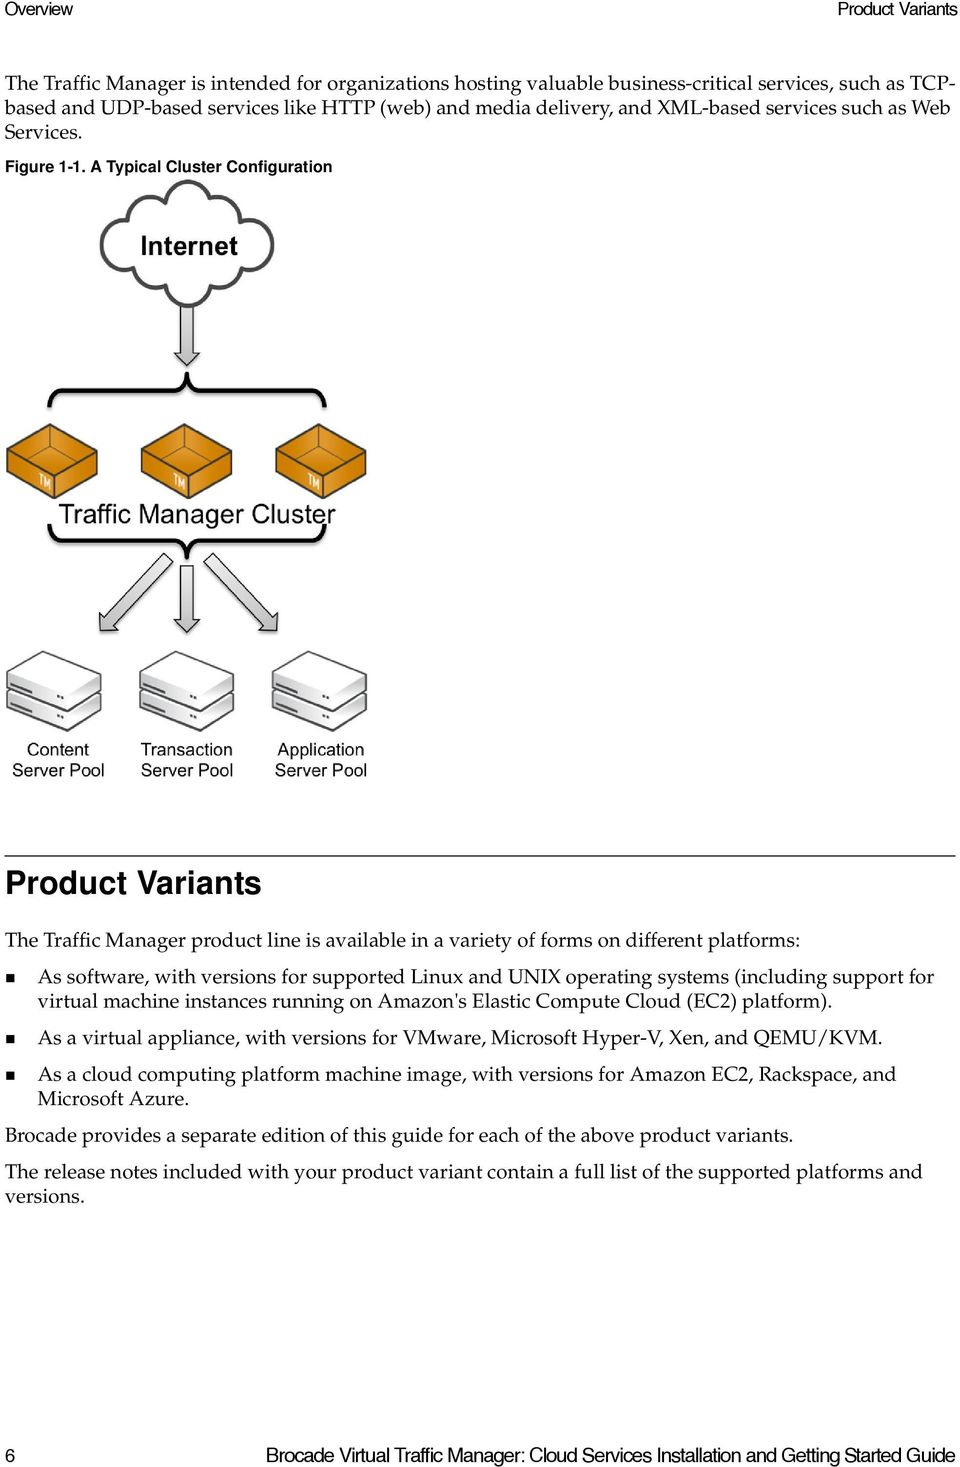 A Typical Cluster Configuration Product Variants The Traffic Manager product line is available in a variety of forms on different platforms: As software, with versions for supported Linux and UNIX